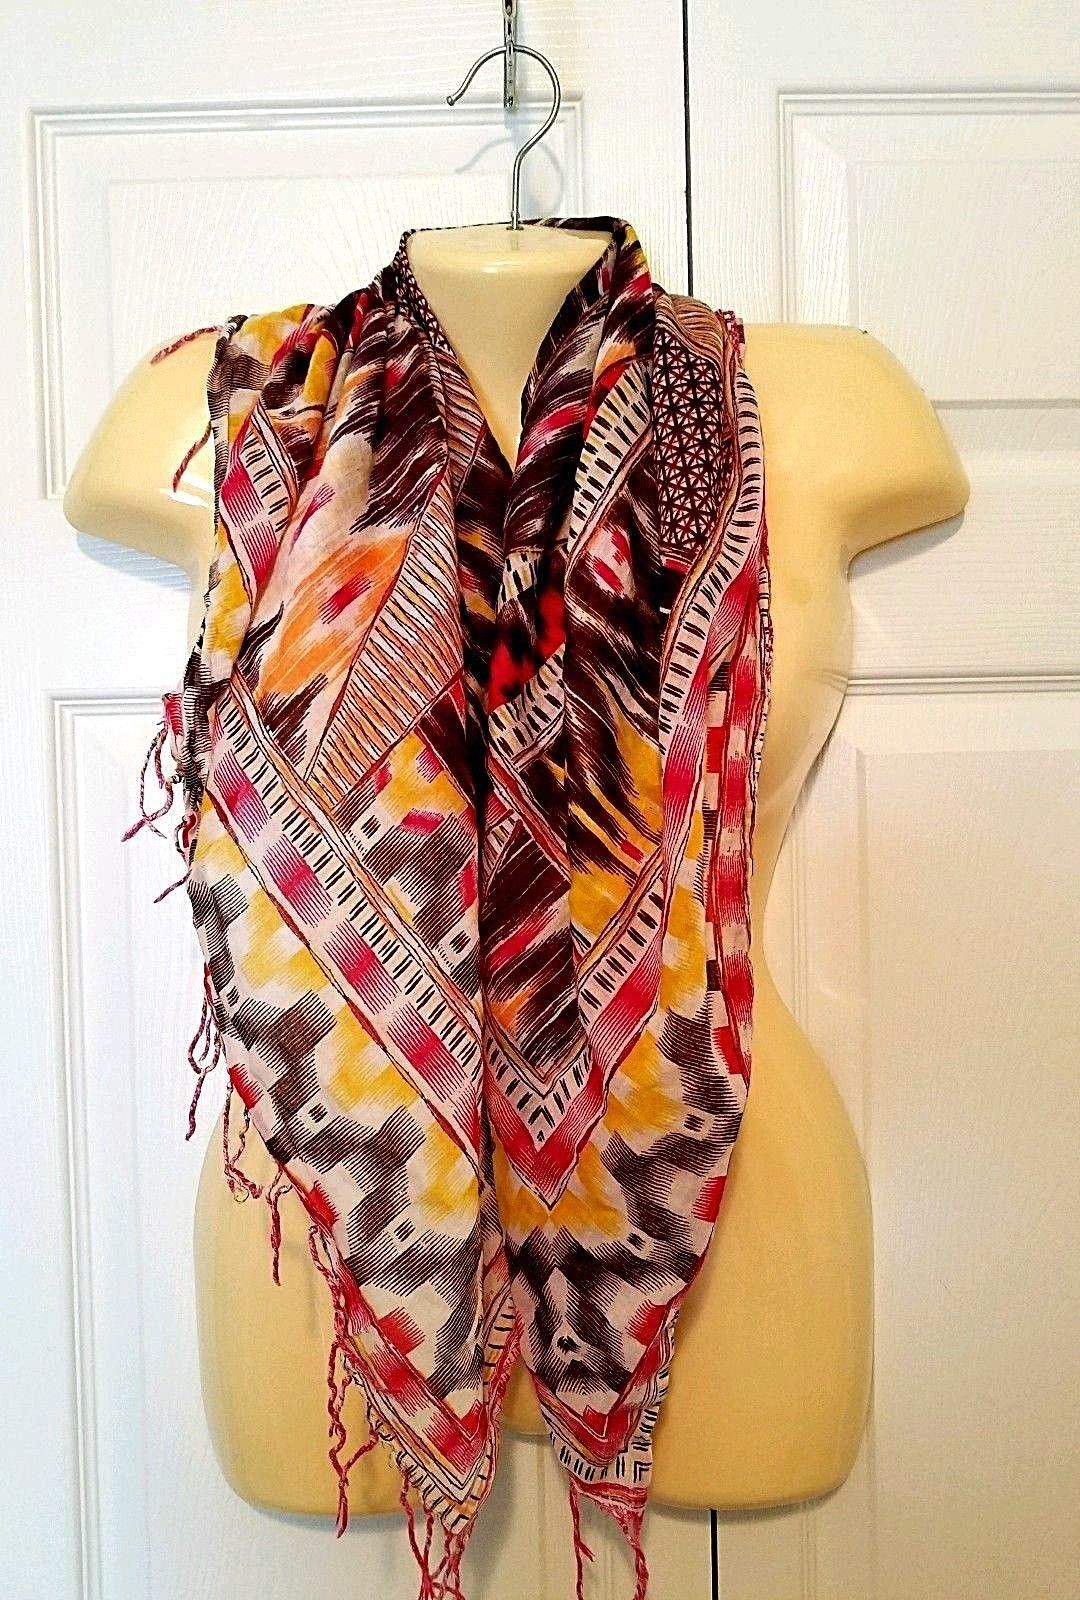 Green Yellow and Red Sheer Chiffon Scarves Rasta Colors Fashion Scarf Set